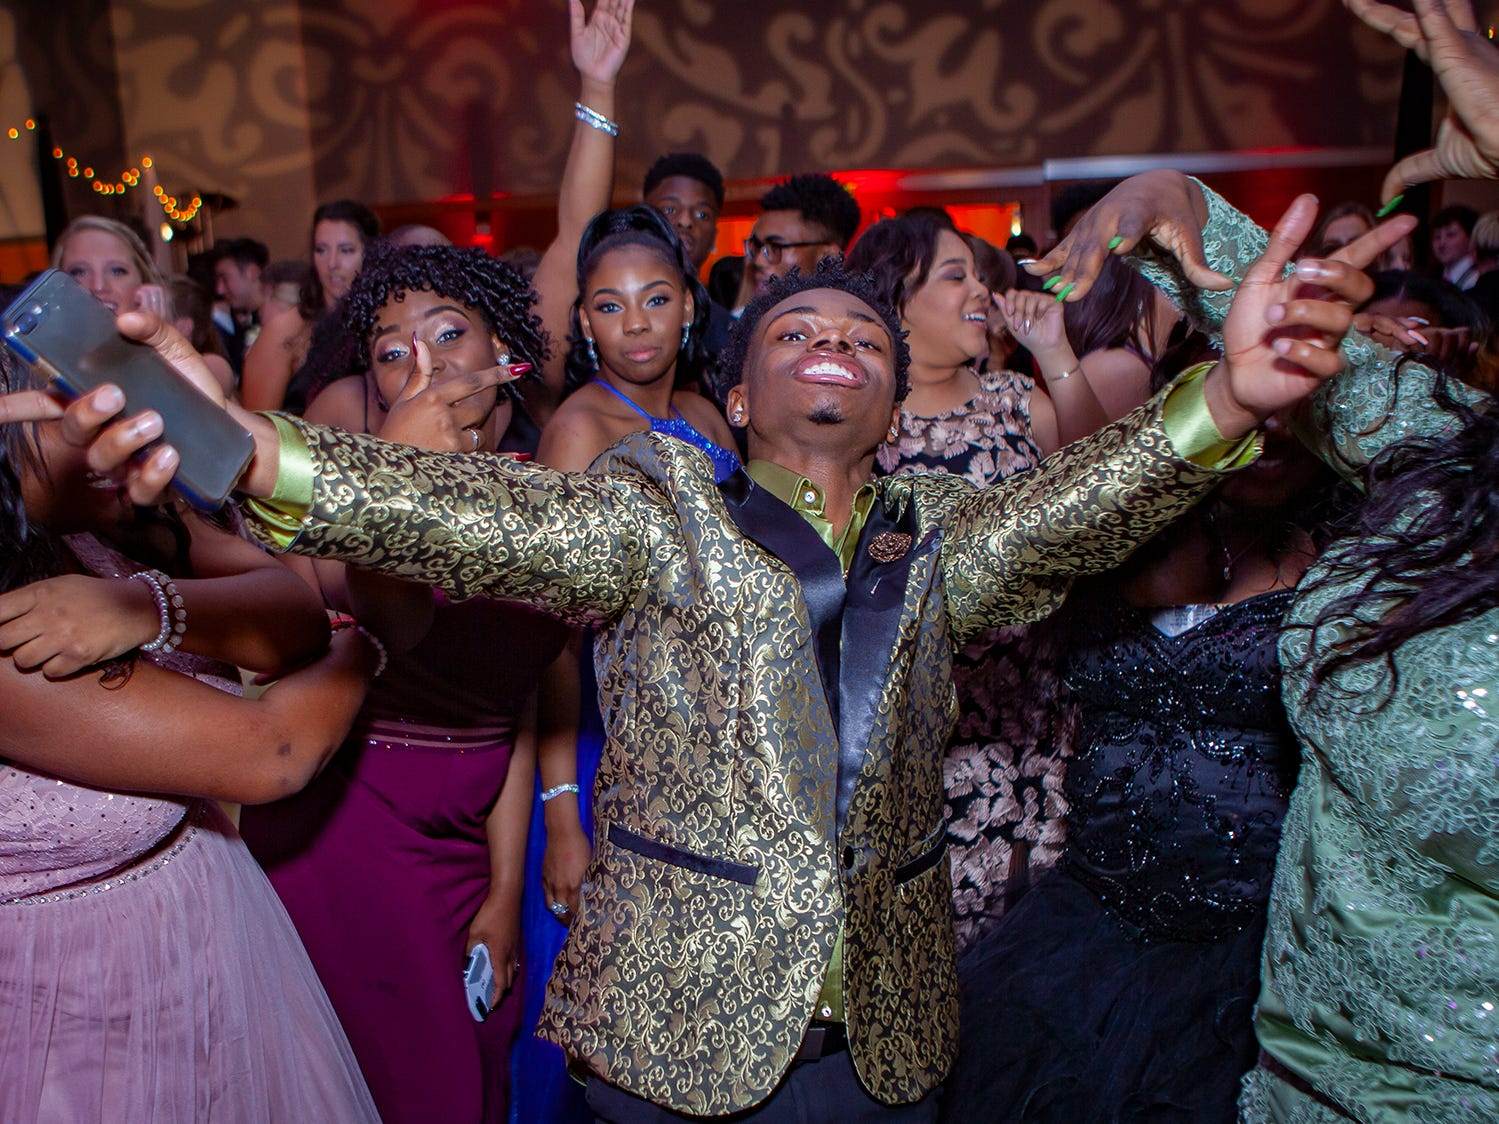 Riverdale's promgoers packed the dance floor Saturday, April 27, 2019 at MTSU's Student Union Building.